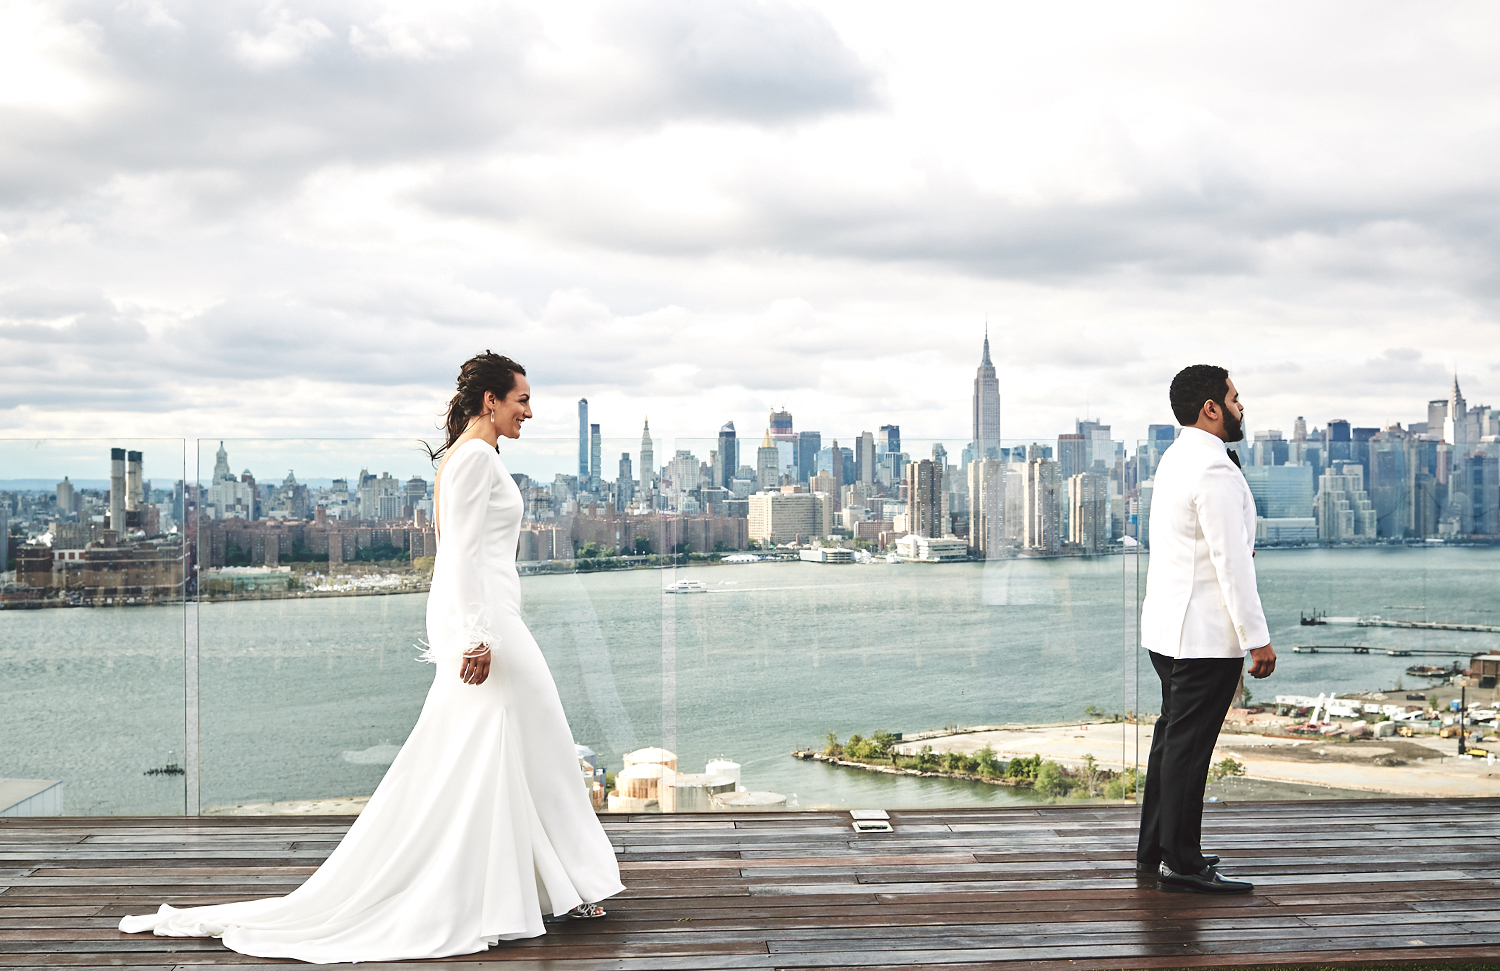 170930_WilliamValeWeddingPhotography_BrooklynWeddingPhotographer_By_BriJohnsonWeddings_0067.jpg